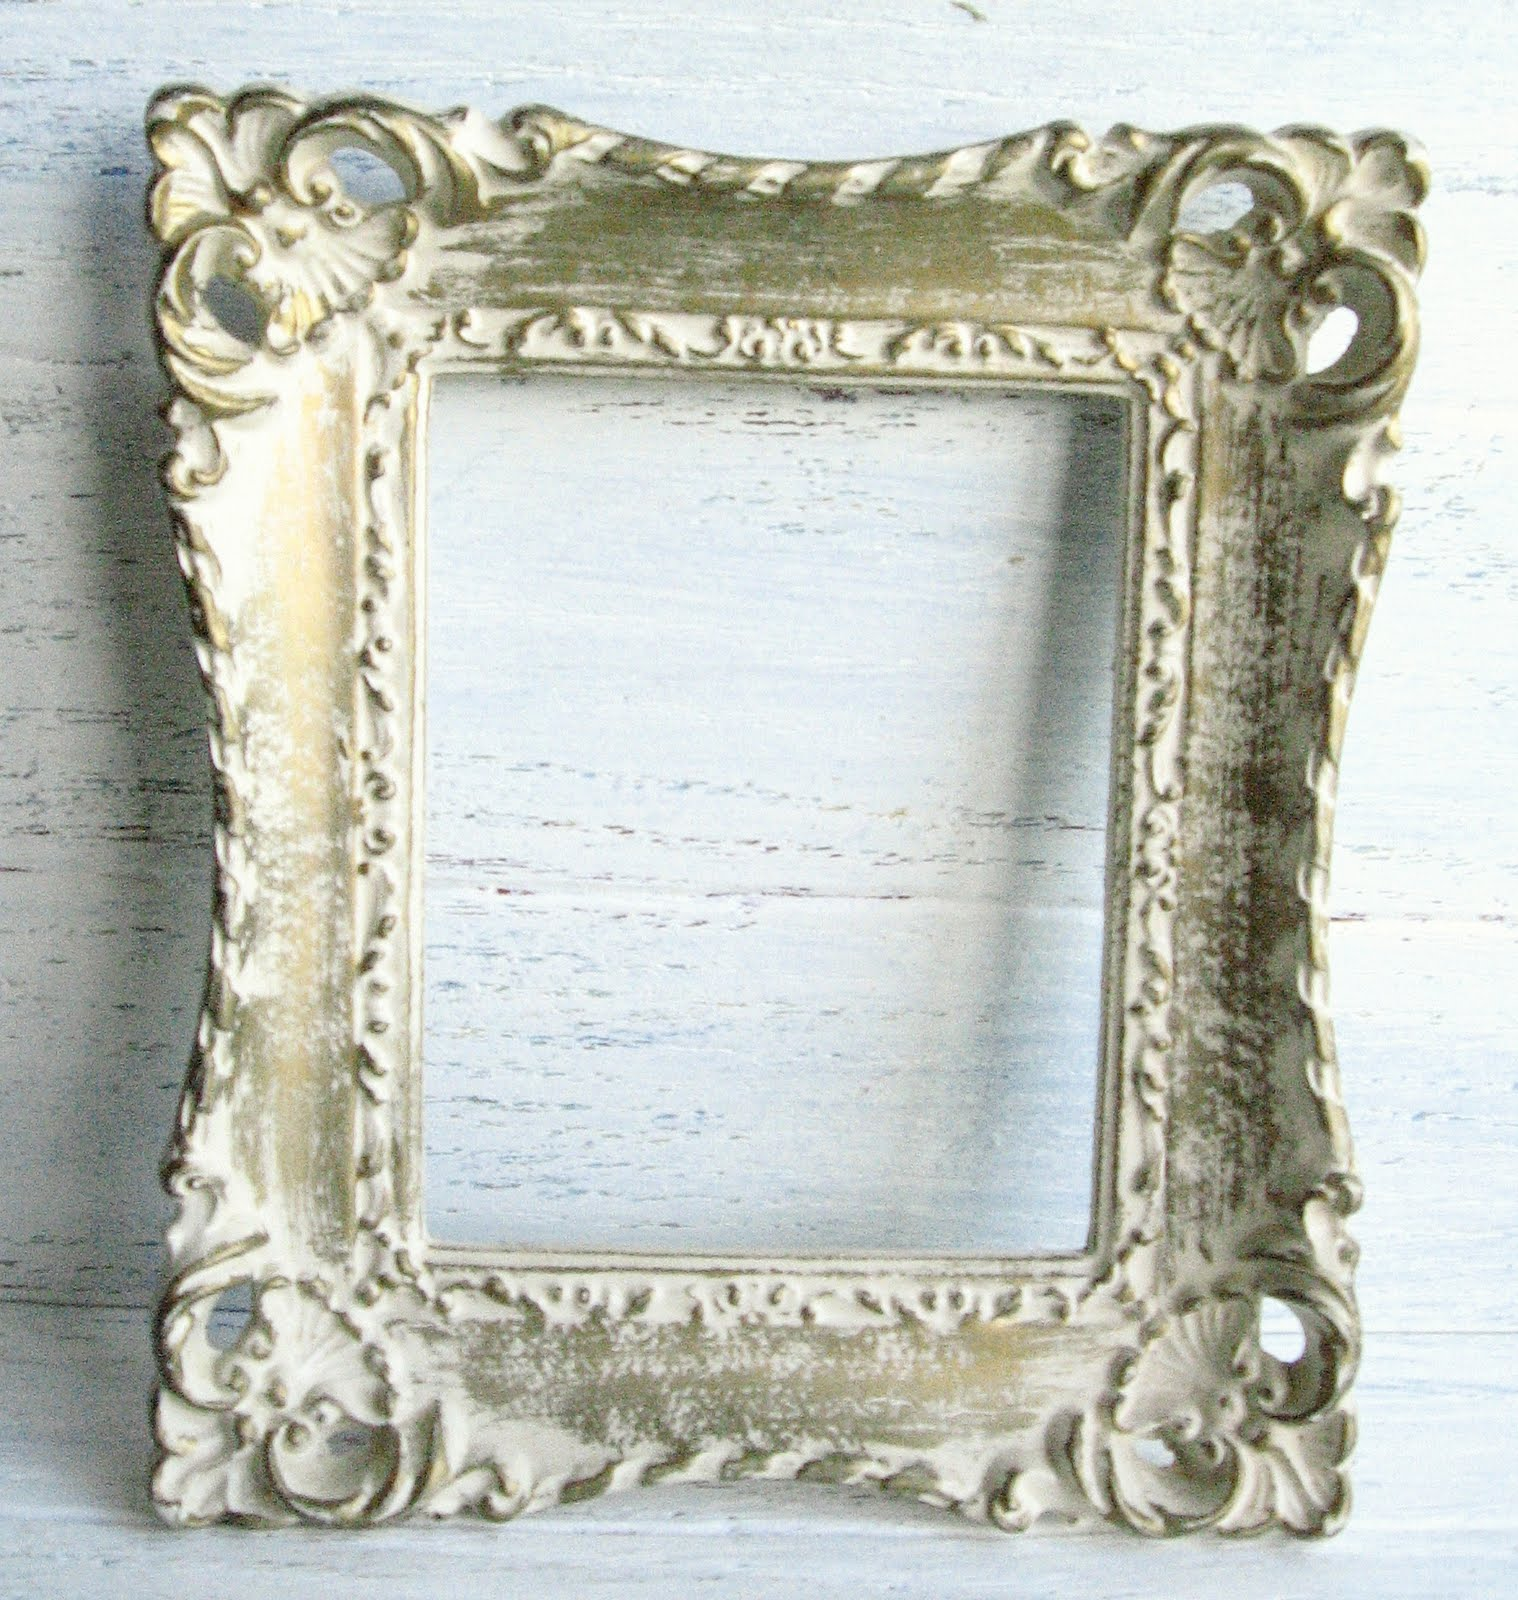 Magia Mia: Morphing Frames ala Chalk Paint